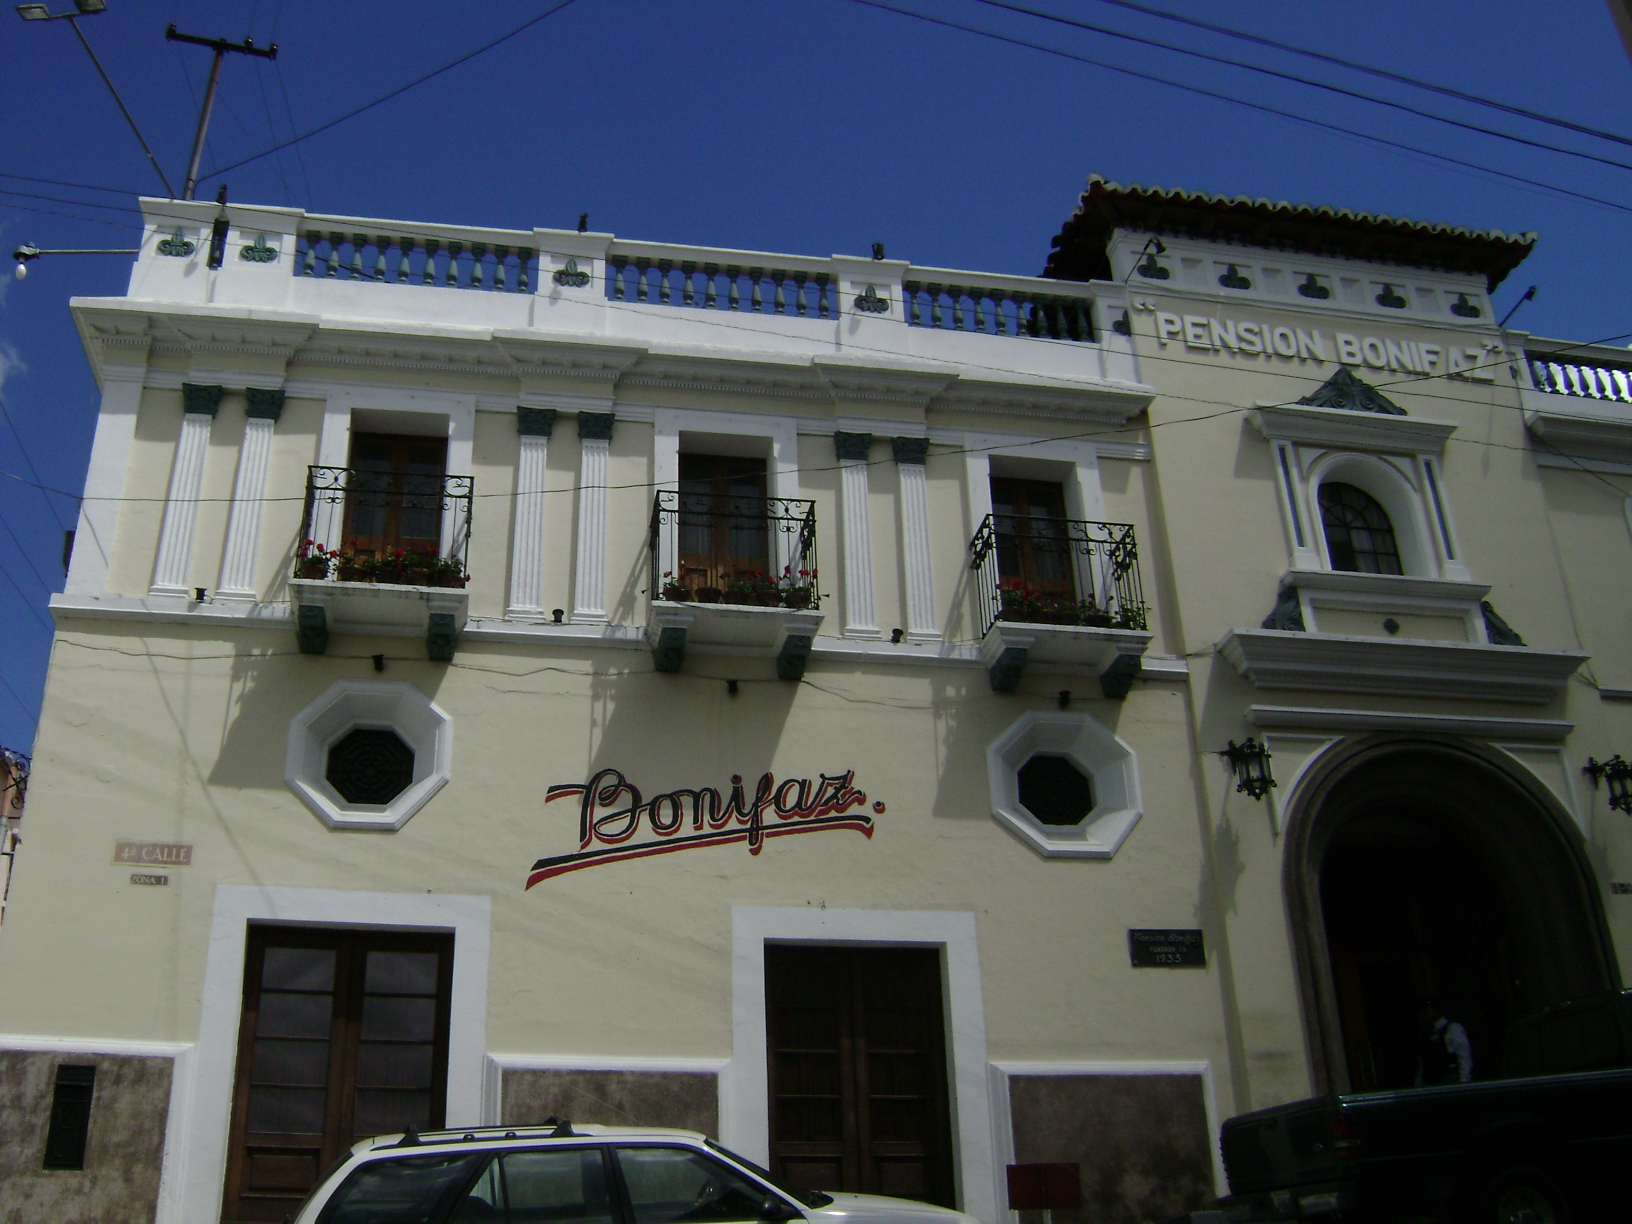 Pension Bonifaz Hotel